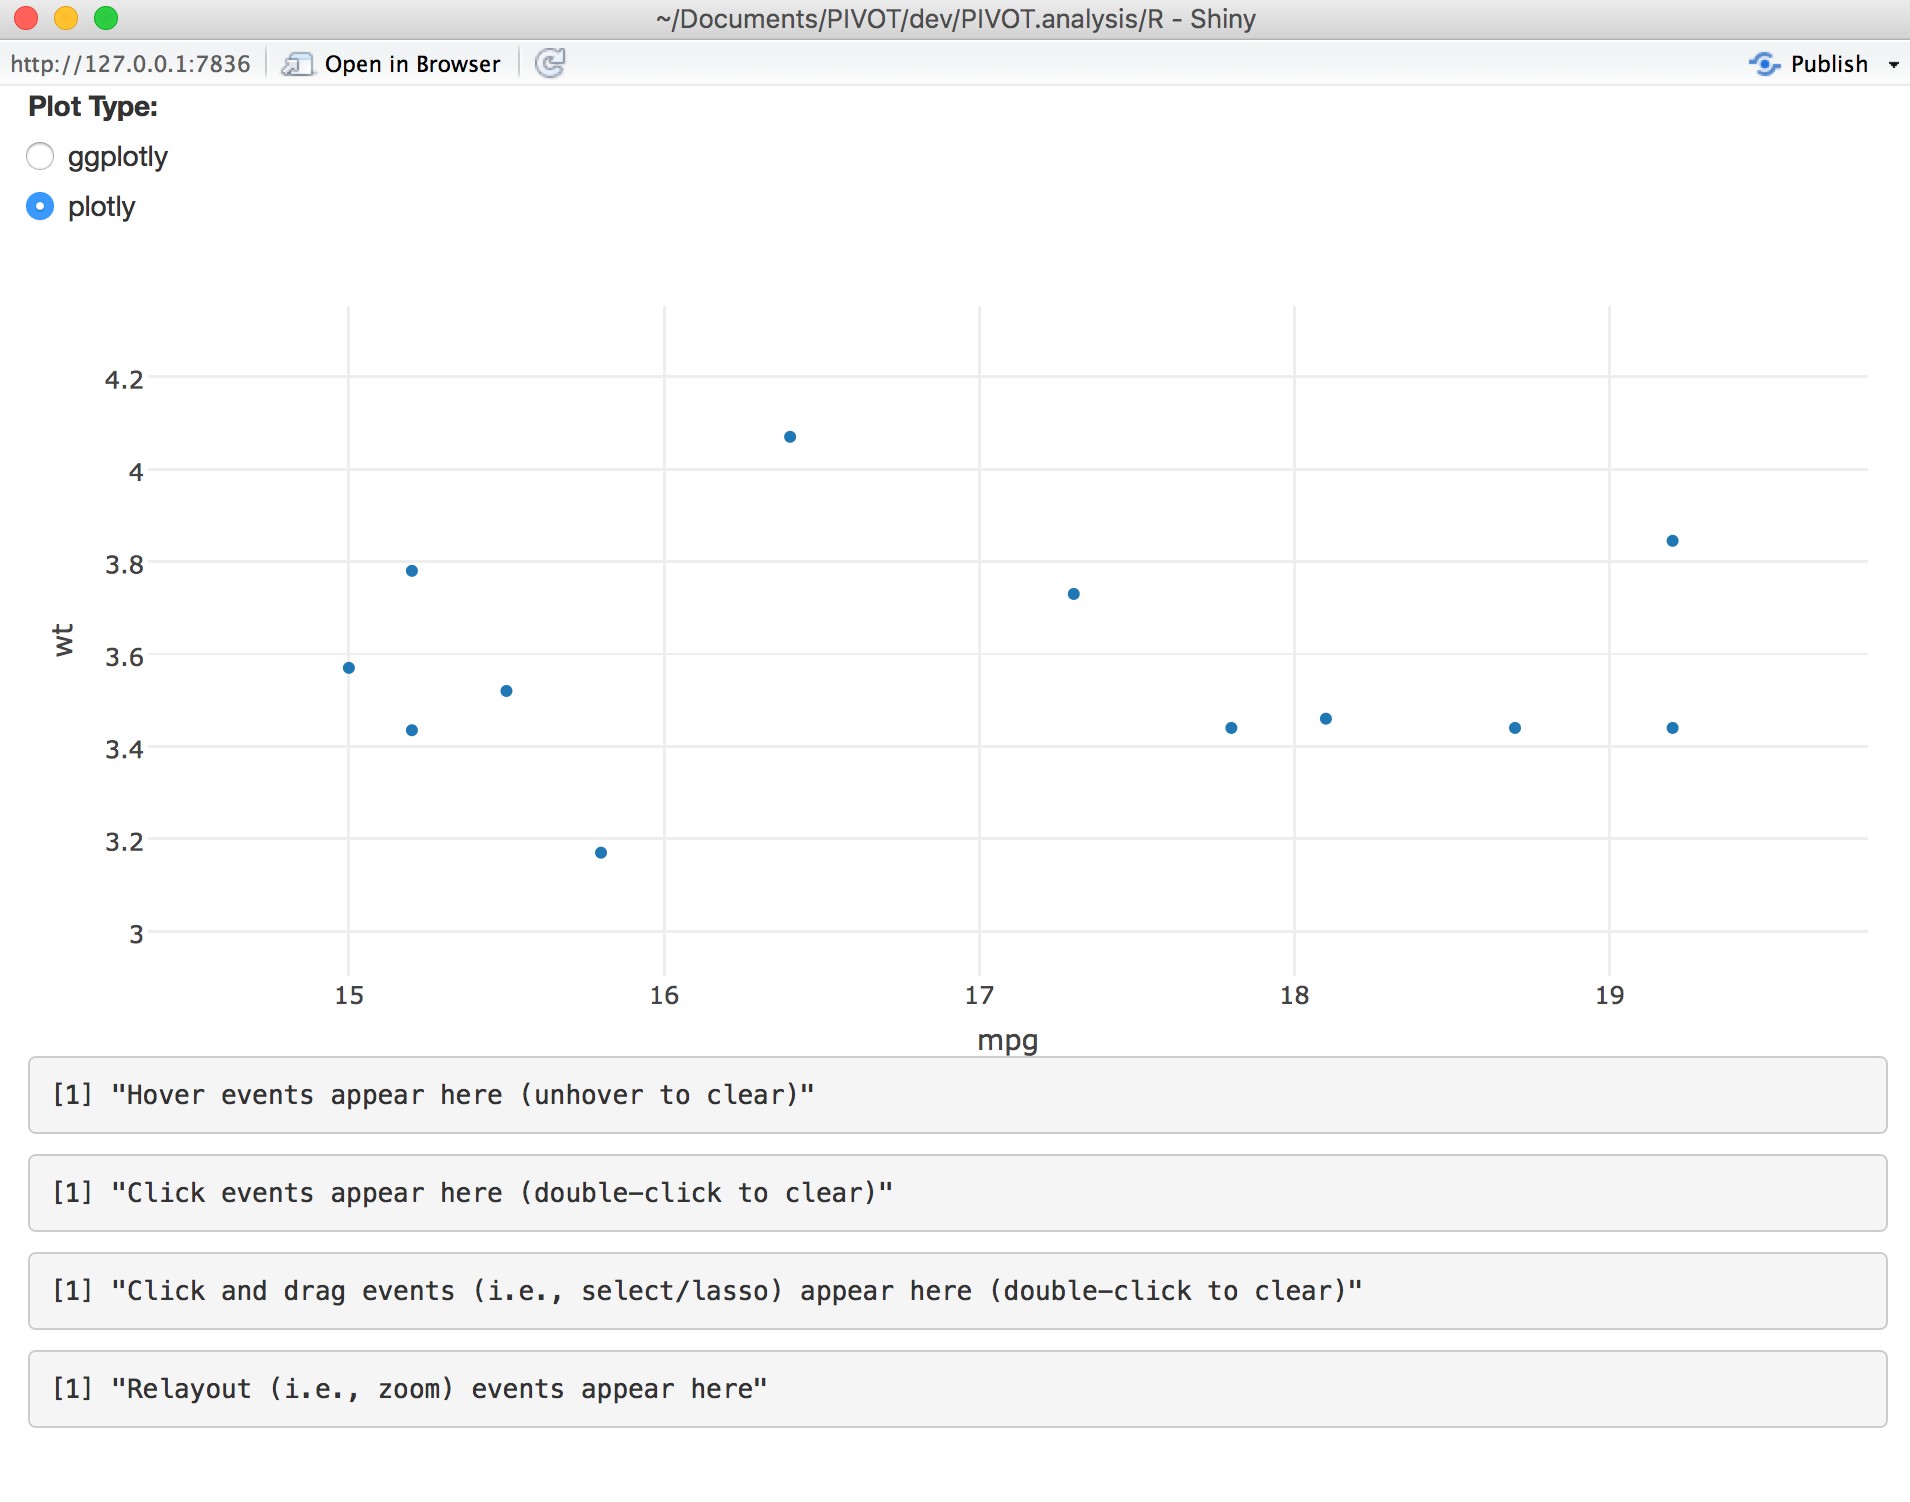 latest plotly does not support relayout events · Issue #1076